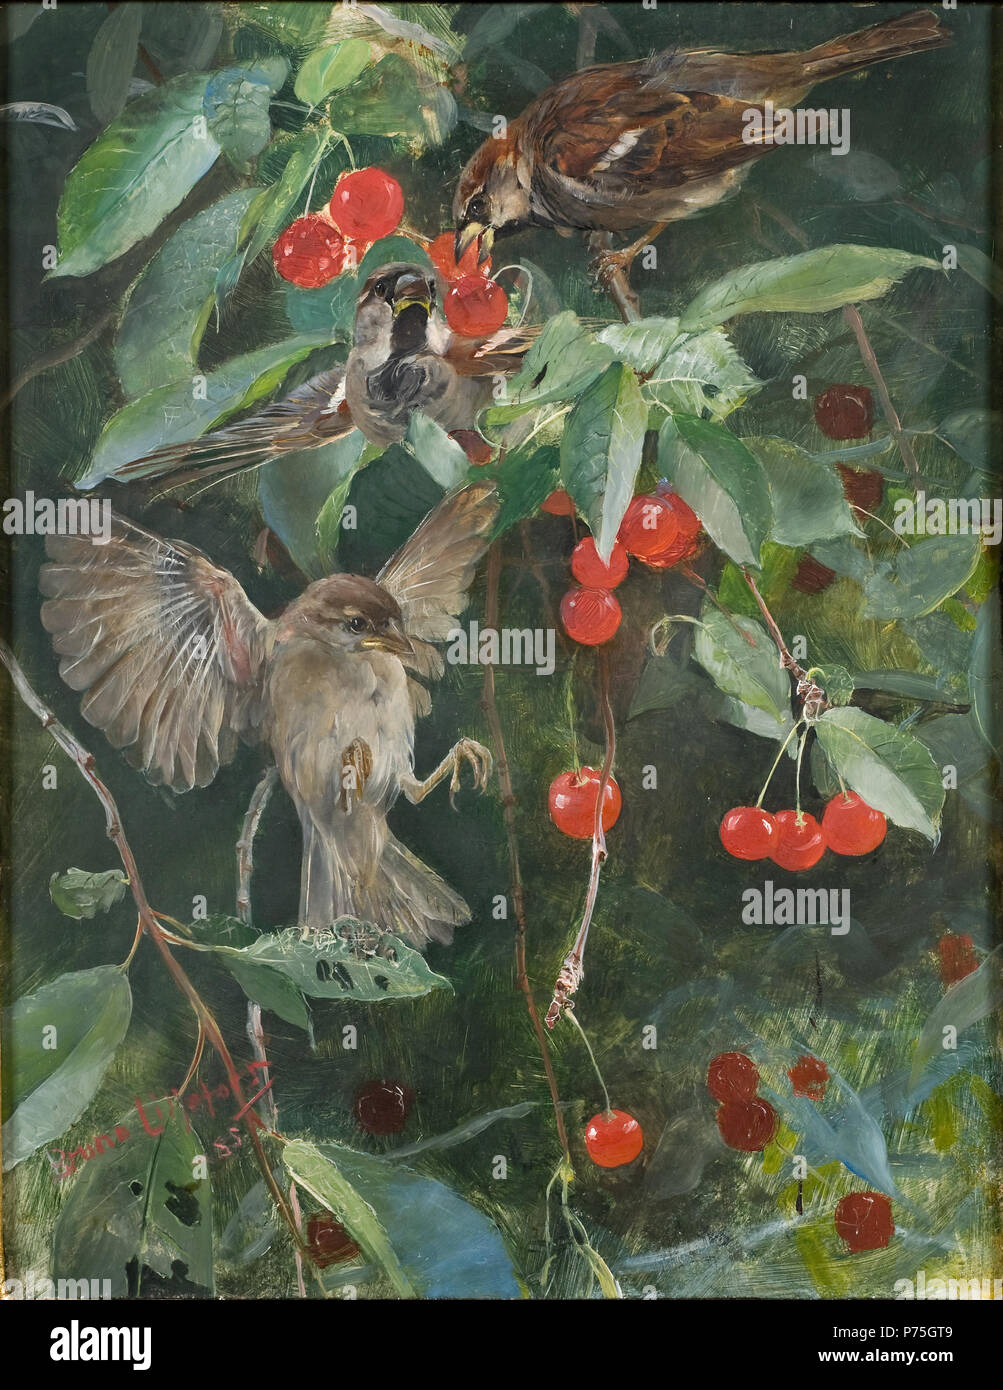 En av fem djurstudier i samma ram, NM 2223-2227. NM 2226 52 Sparrows in a  Cherry Tree. Five studies in one frame, NM 2223-2227 (Bruno Liljefors) ...